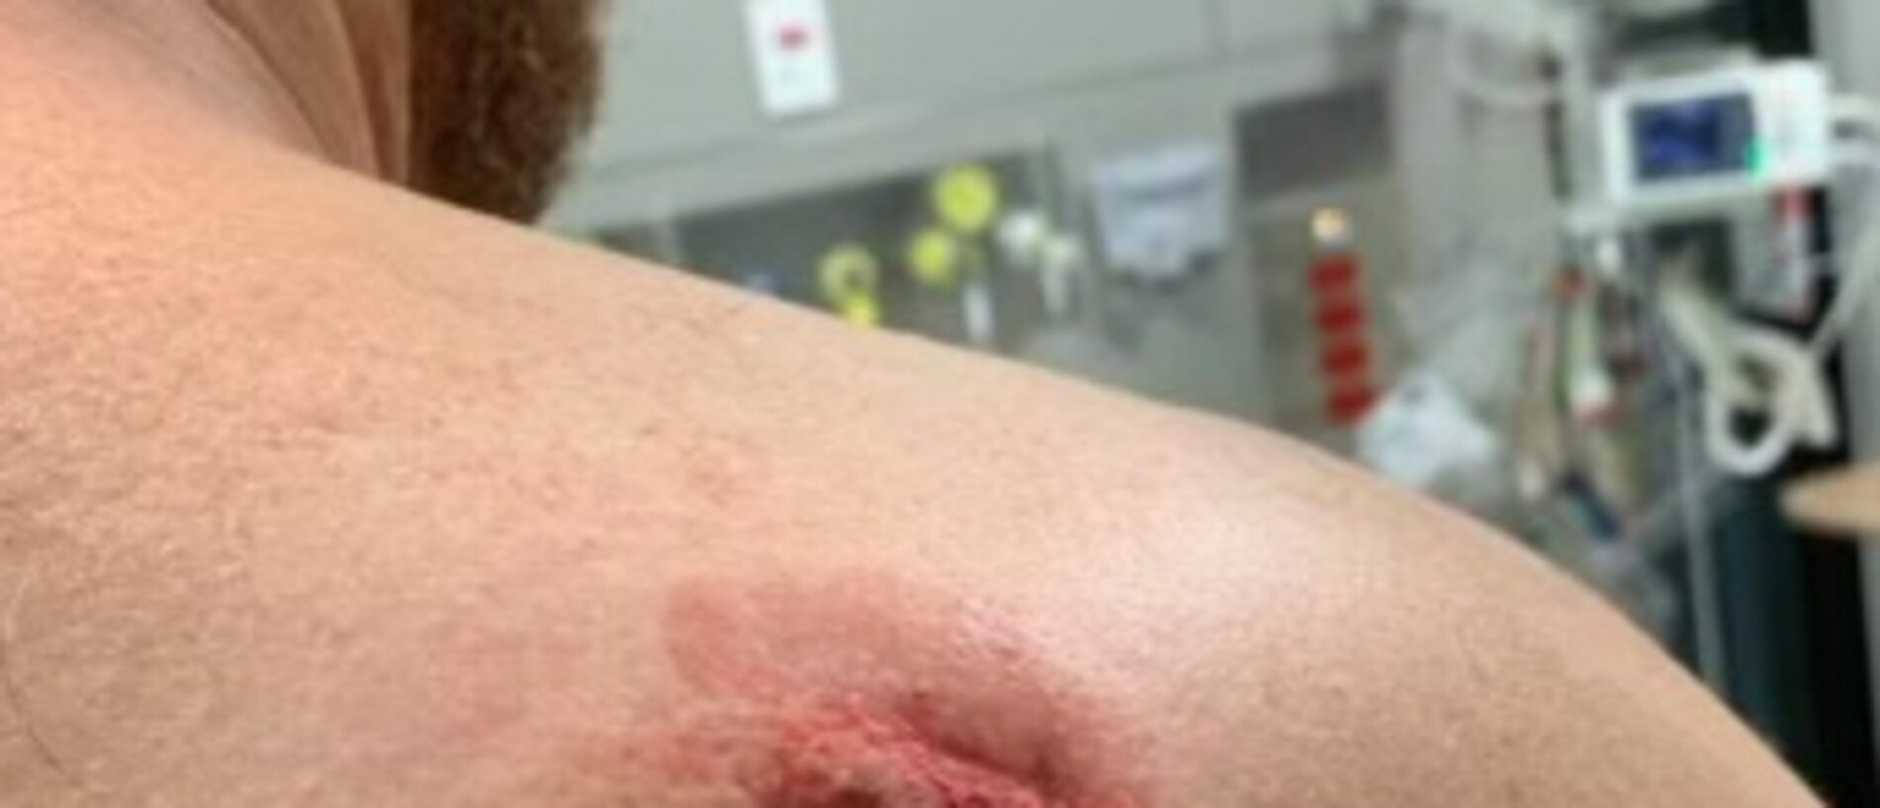 Bite marks are seen on the shoulder of a man who the Health Services Union said was injured at Port Macquarie Base Hospital. Supplied via NCA NewsWire.